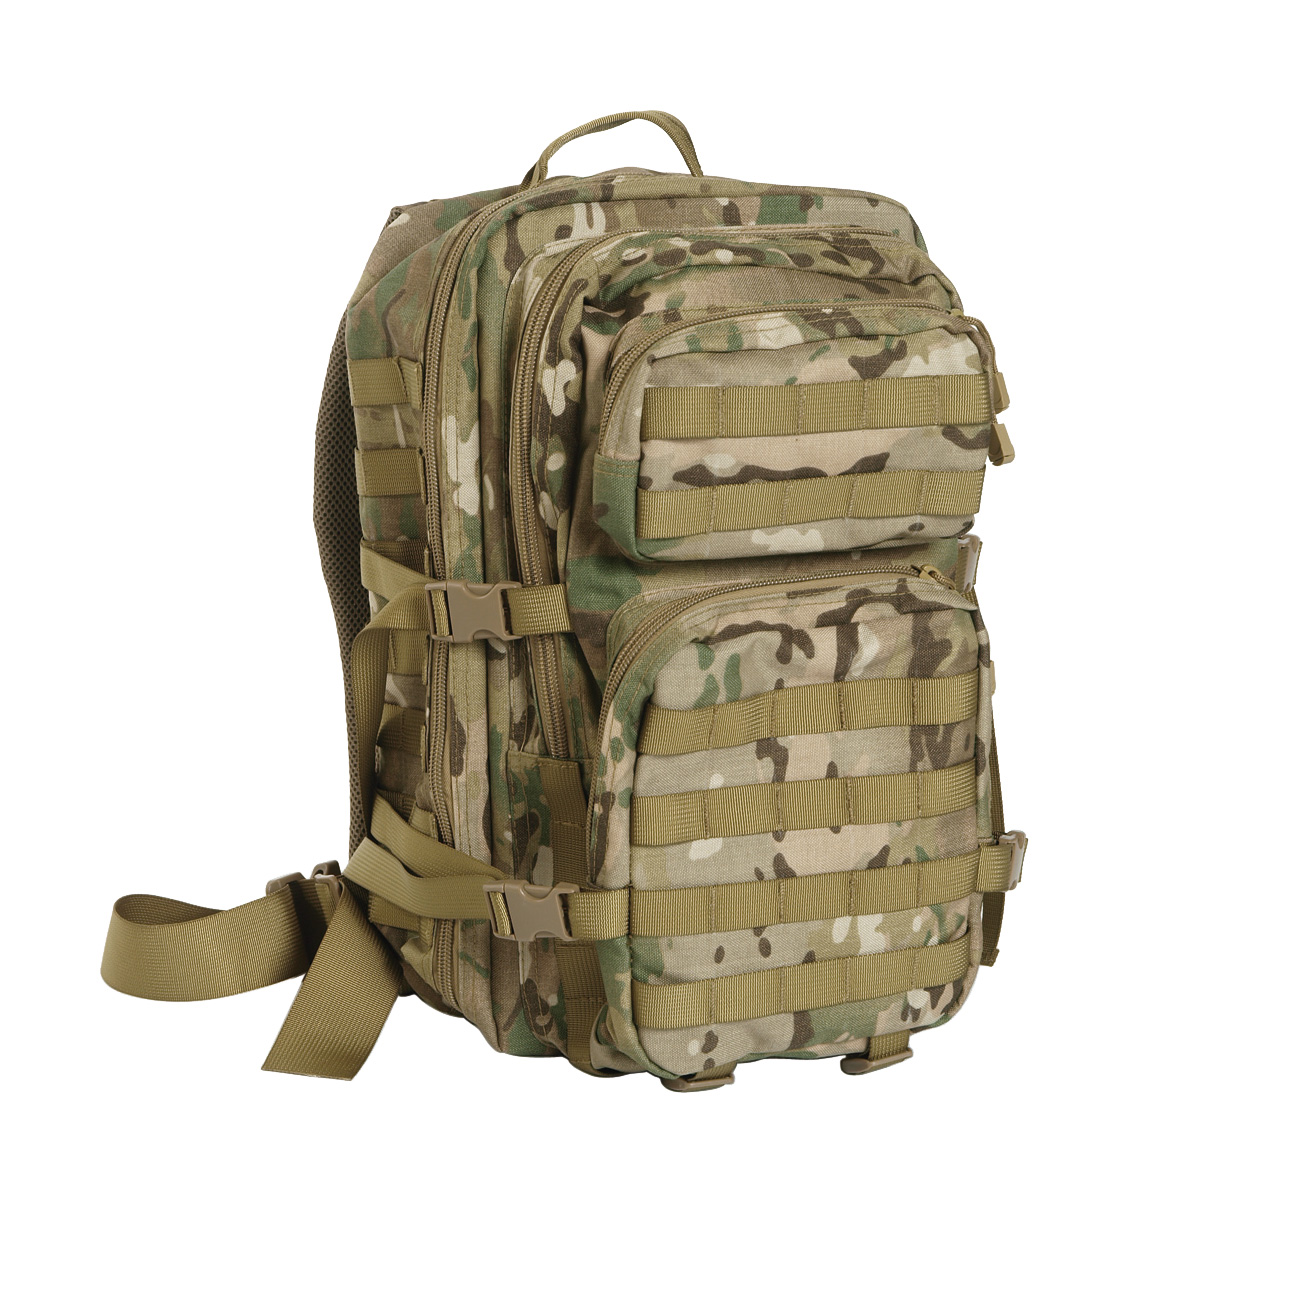 Mil-Tec Rucksack US Assault Pack II 40 Liter multitarn 0